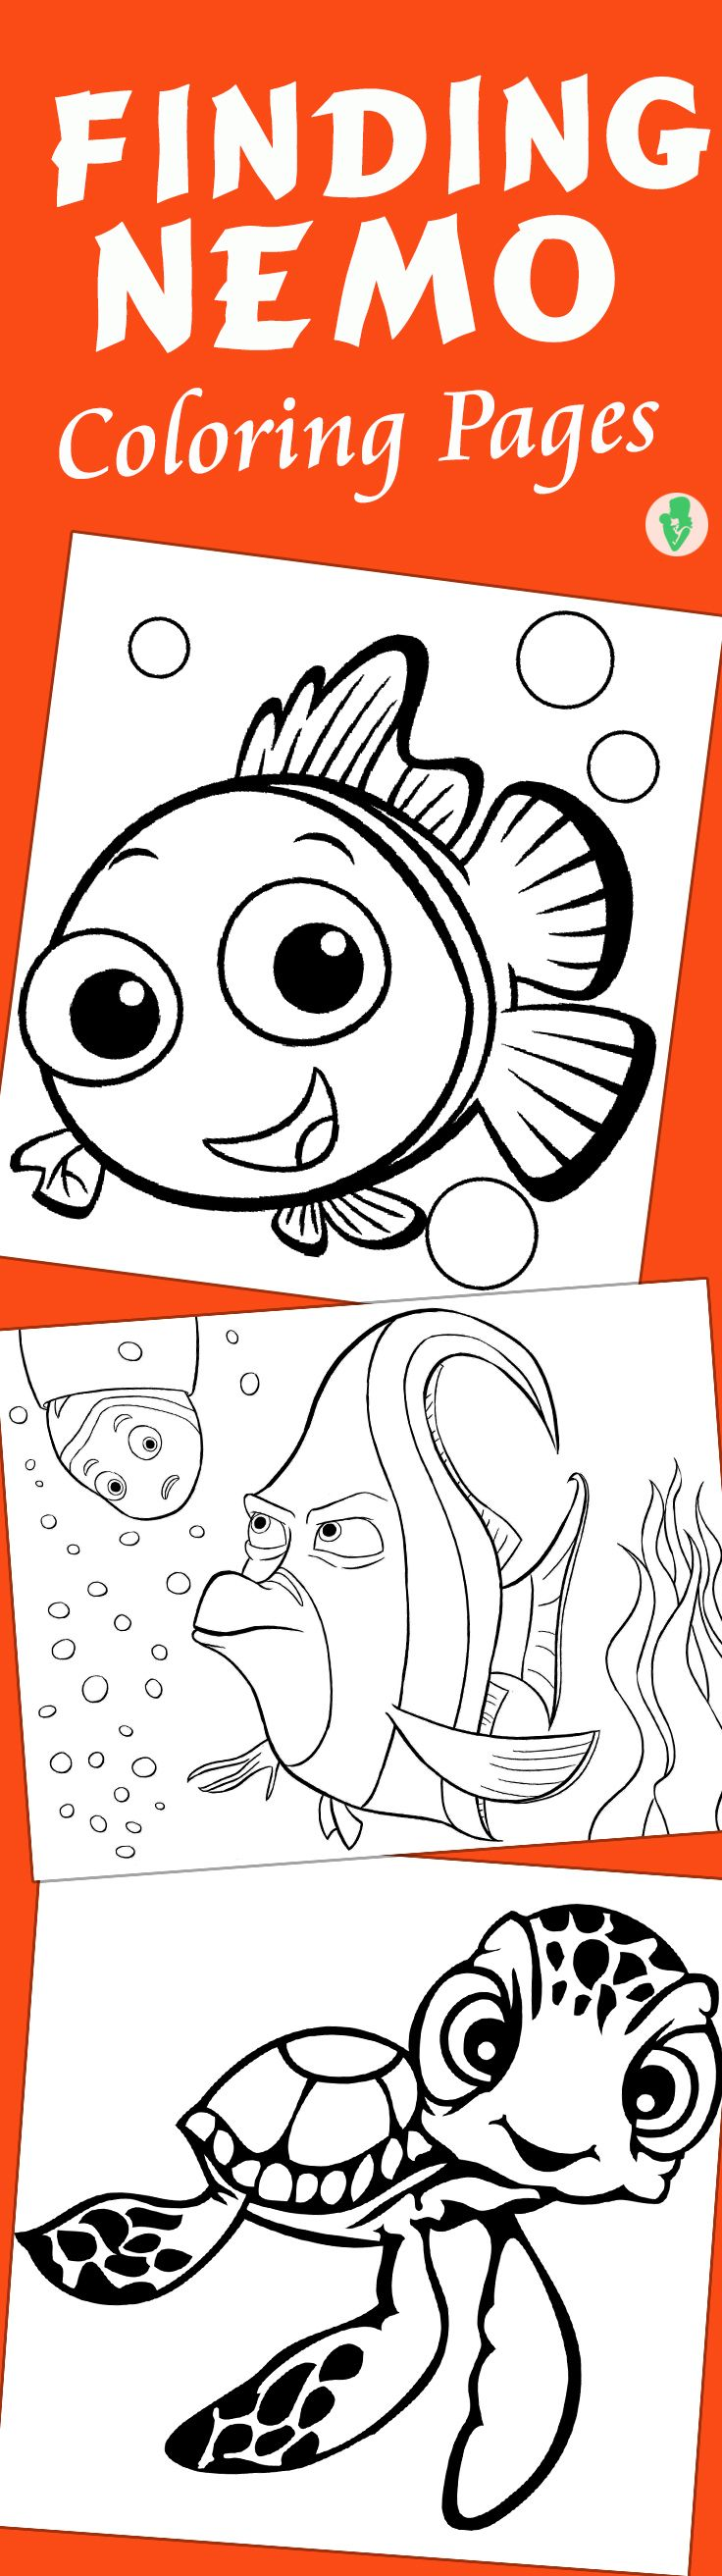 best 25 finding nemo coloring pages ideas on pinterest finding